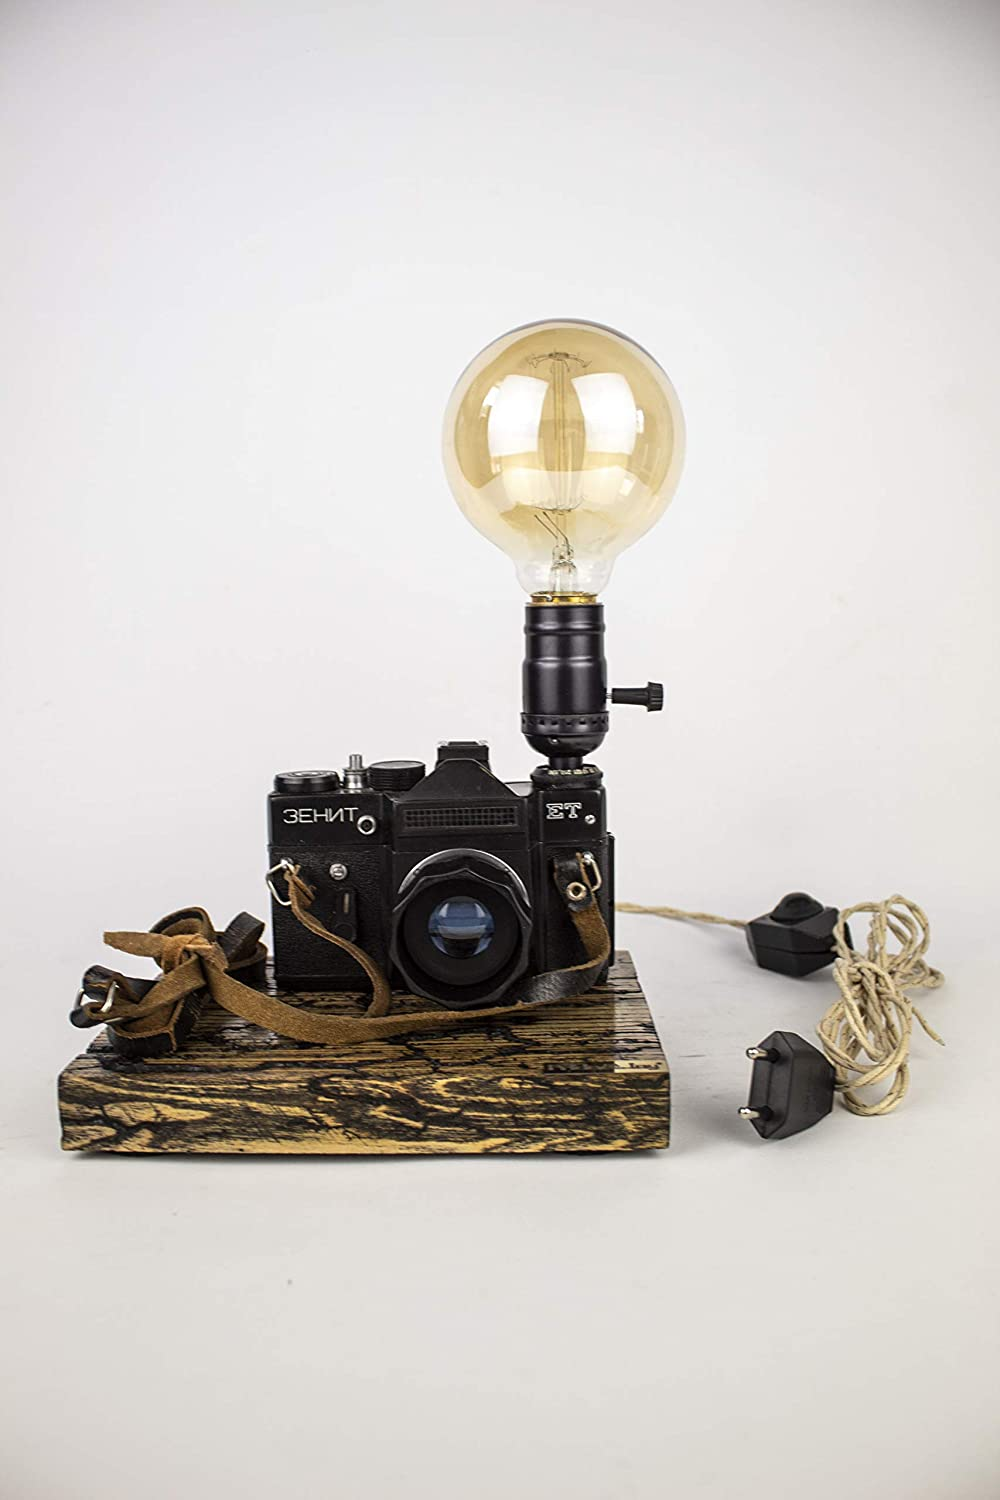 Table Opening large release sale lamp NEW before selling ☆ PrideJoy gifts for old camera him lights h